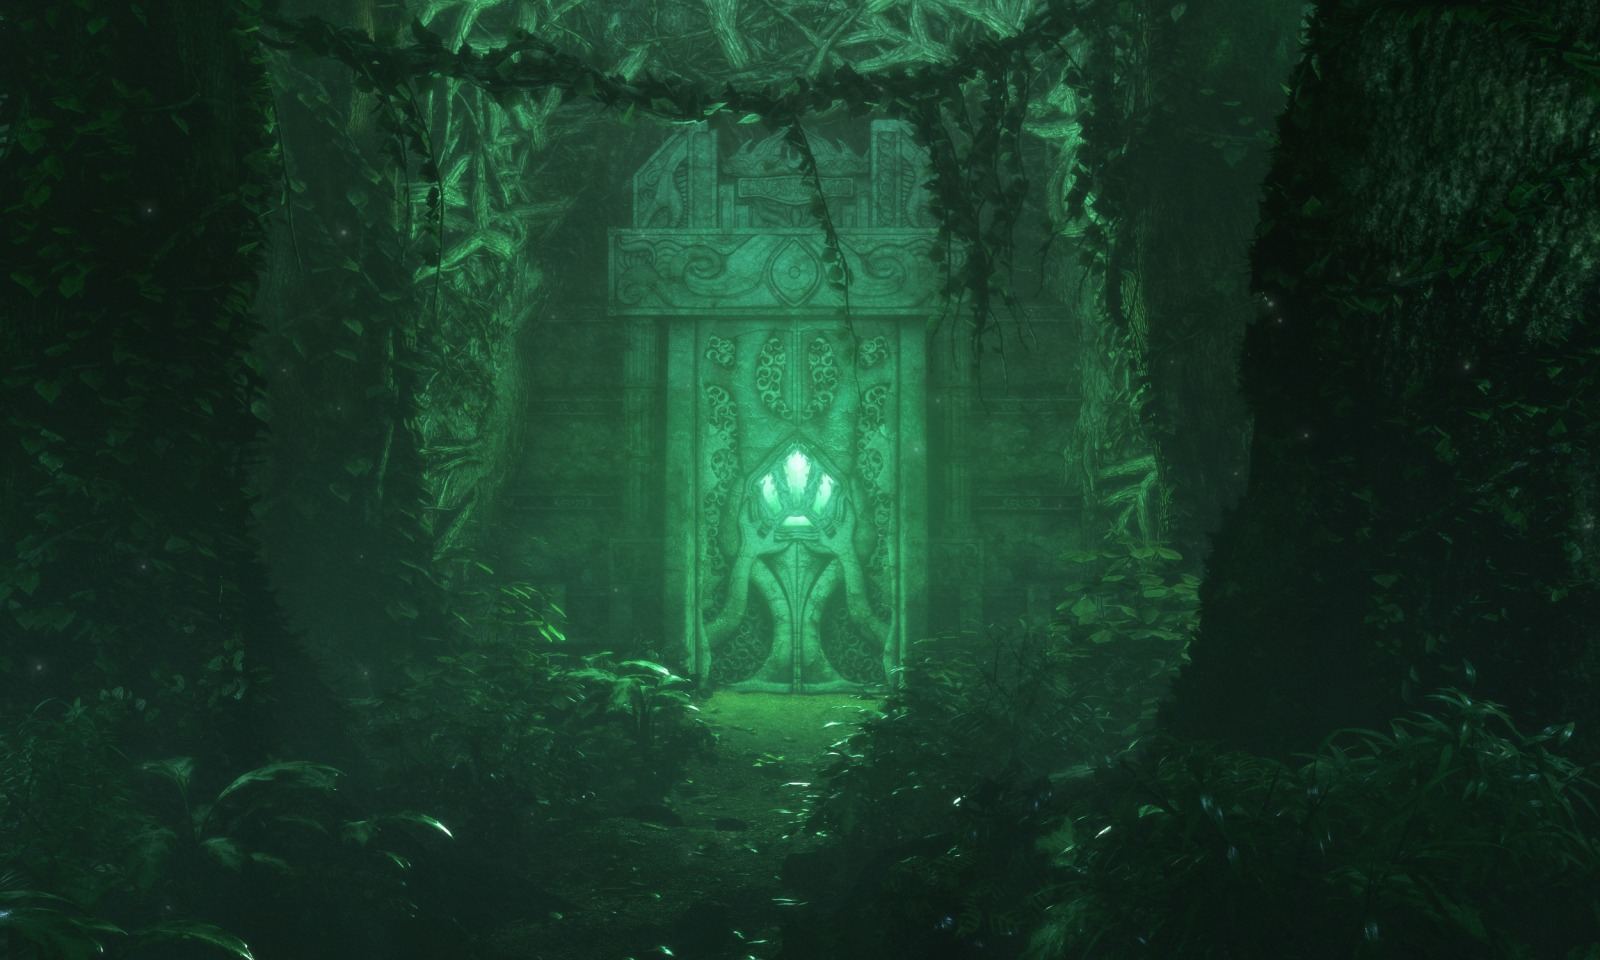 1600x960 14580 old temple 3d fantasy forest temple picture image digital art